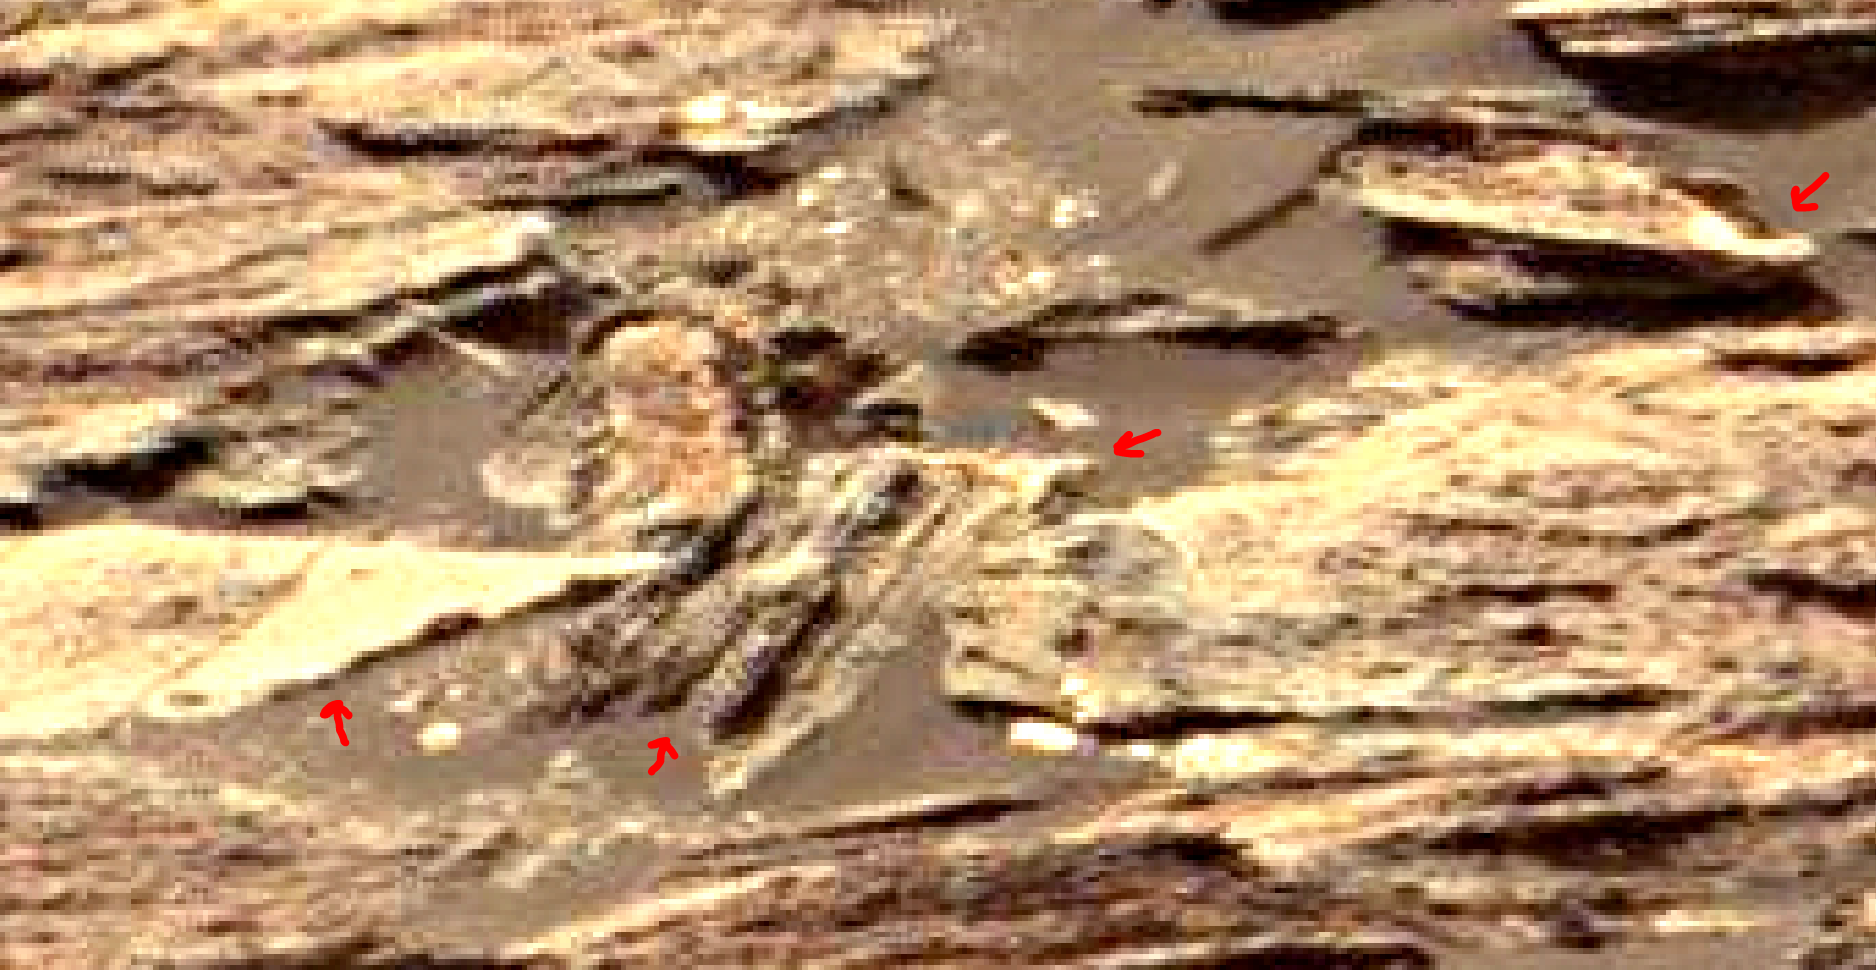 mars-sol-1493-anomaly-artifacts-5a-was-life-on-mars